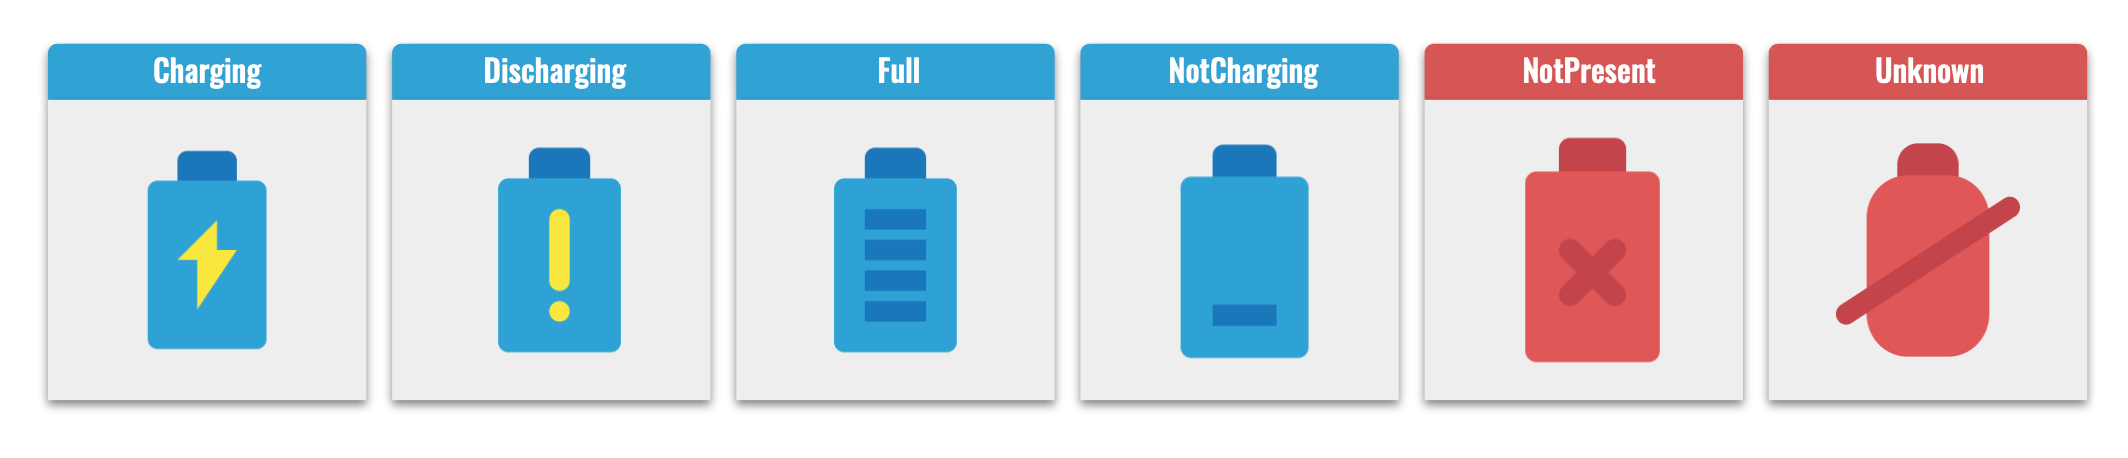 Six state names and corresponding battery shaped icon: Charging with a lightning bolt icon, discharging with an exclamation point, full with four bars filling the battery, NotCharging with one bar, NotPresent with an X and the battery is red (whereas the previous four were blue), and Unknown with a blobular red battery shape with a line through it.